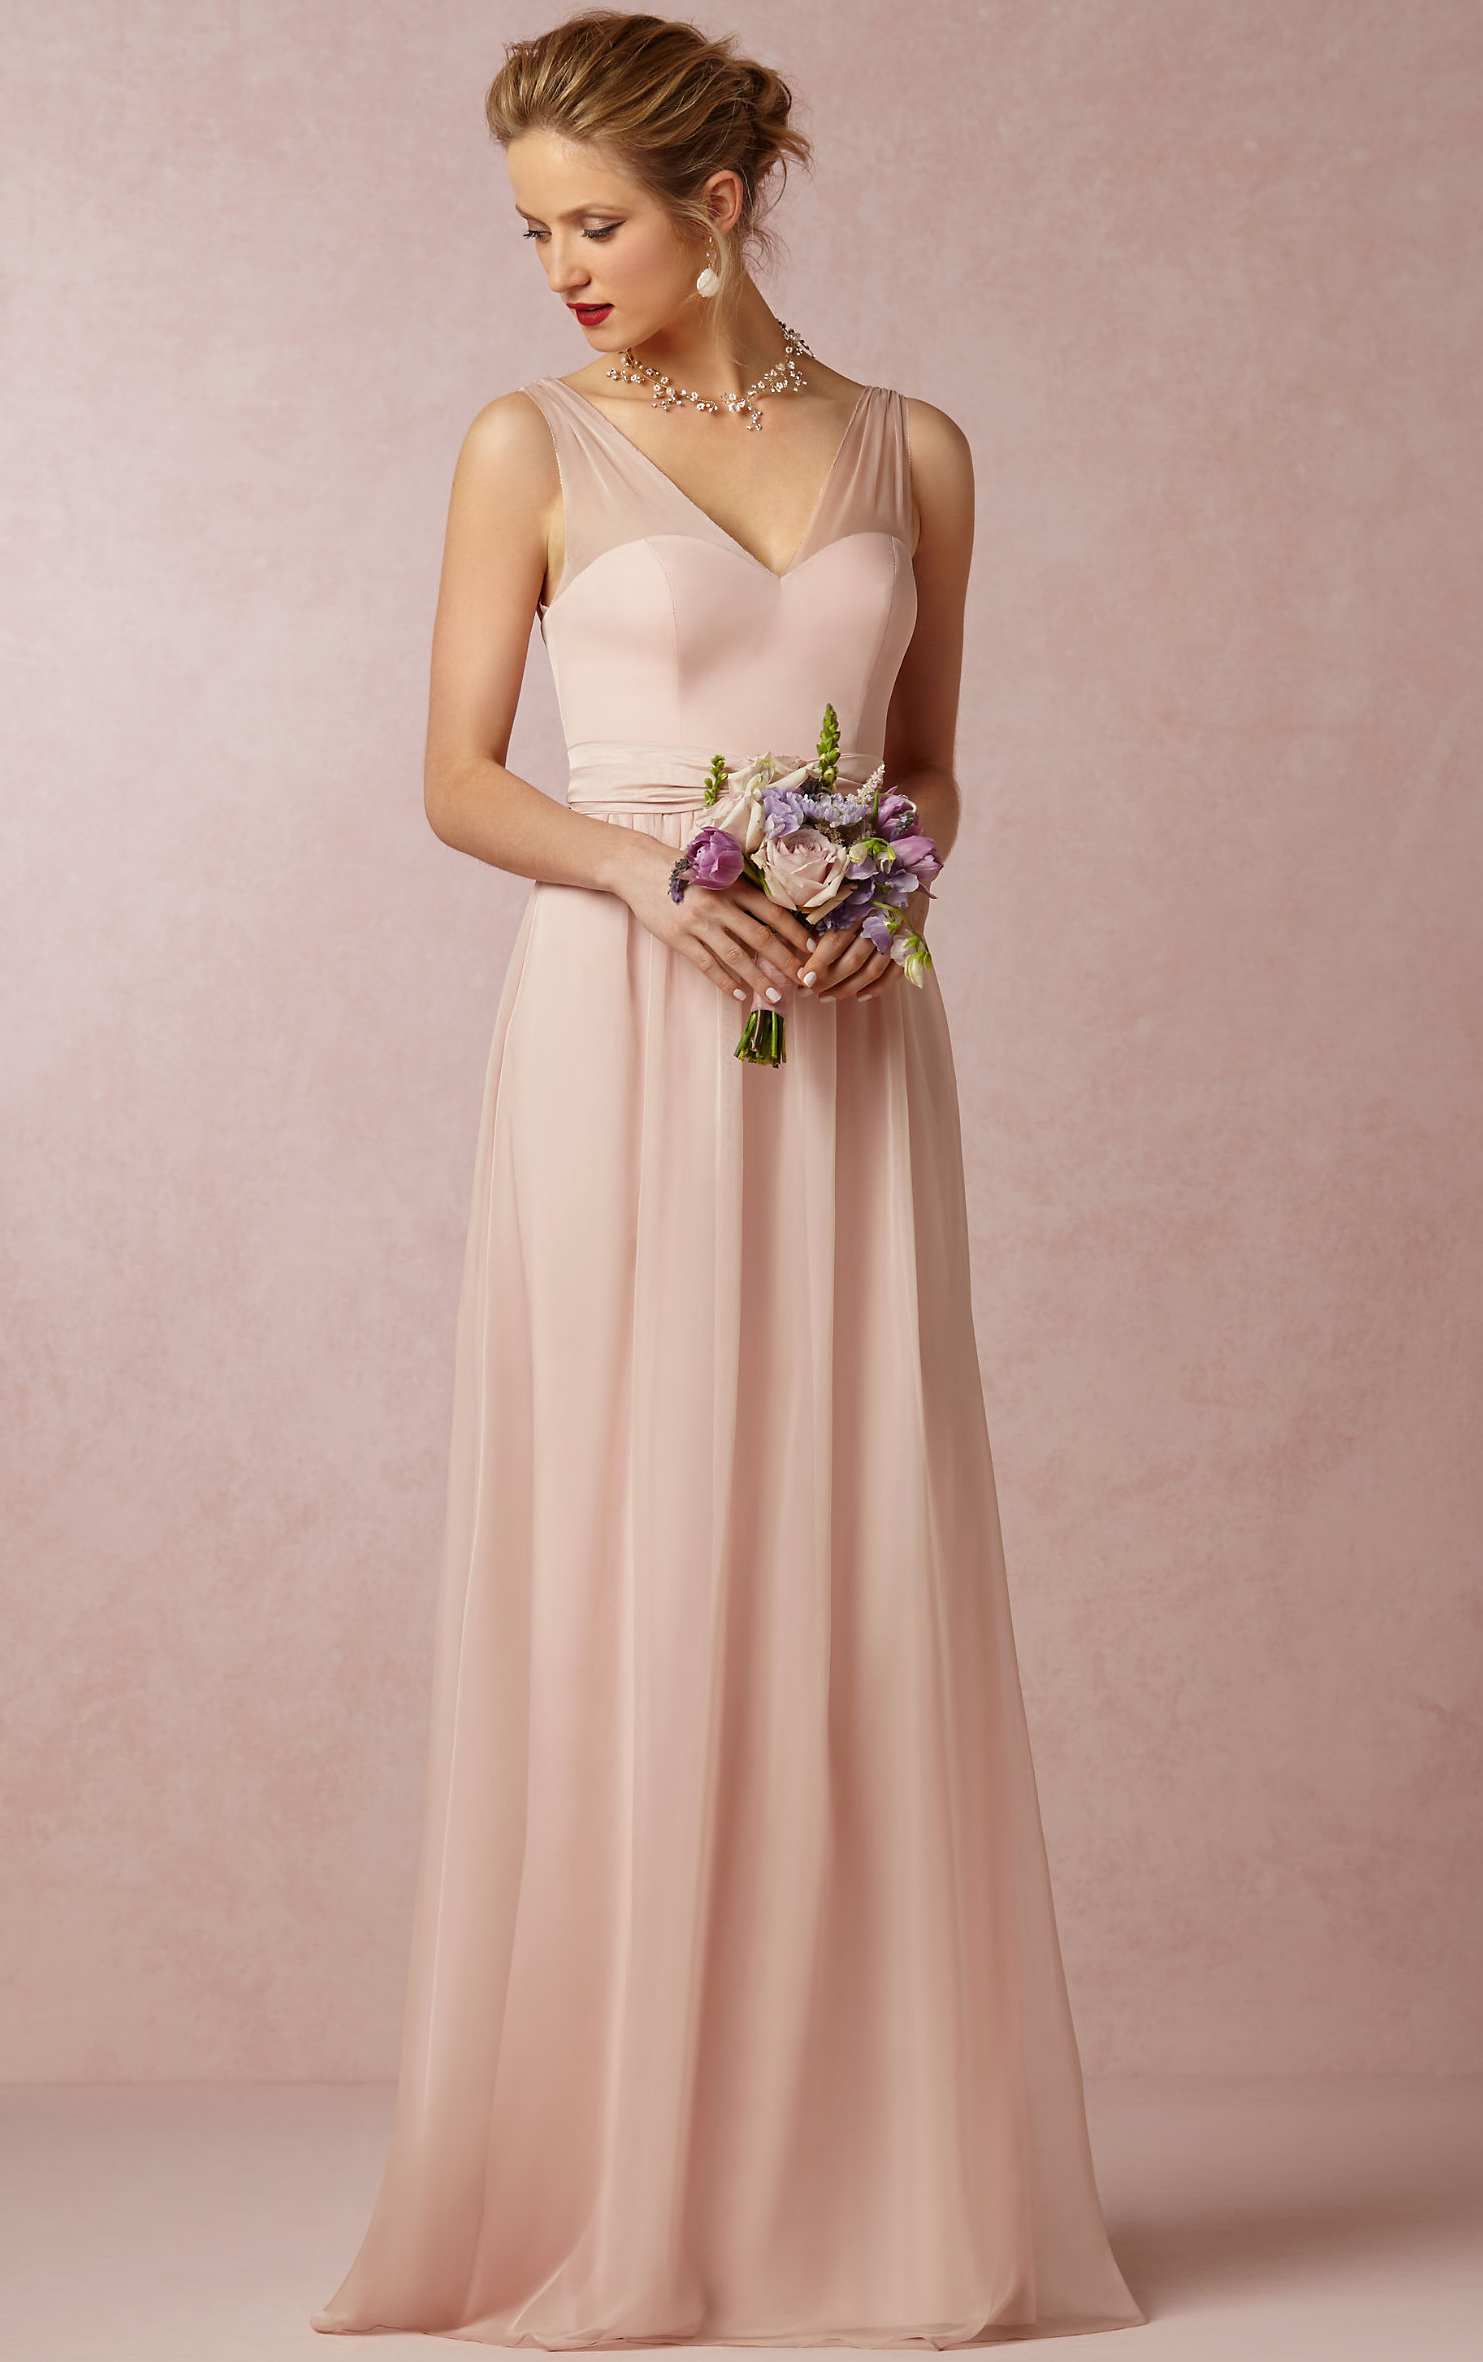 V-neck A-line Sleeveless Natural Floor-length pink bridesmaid dress ...